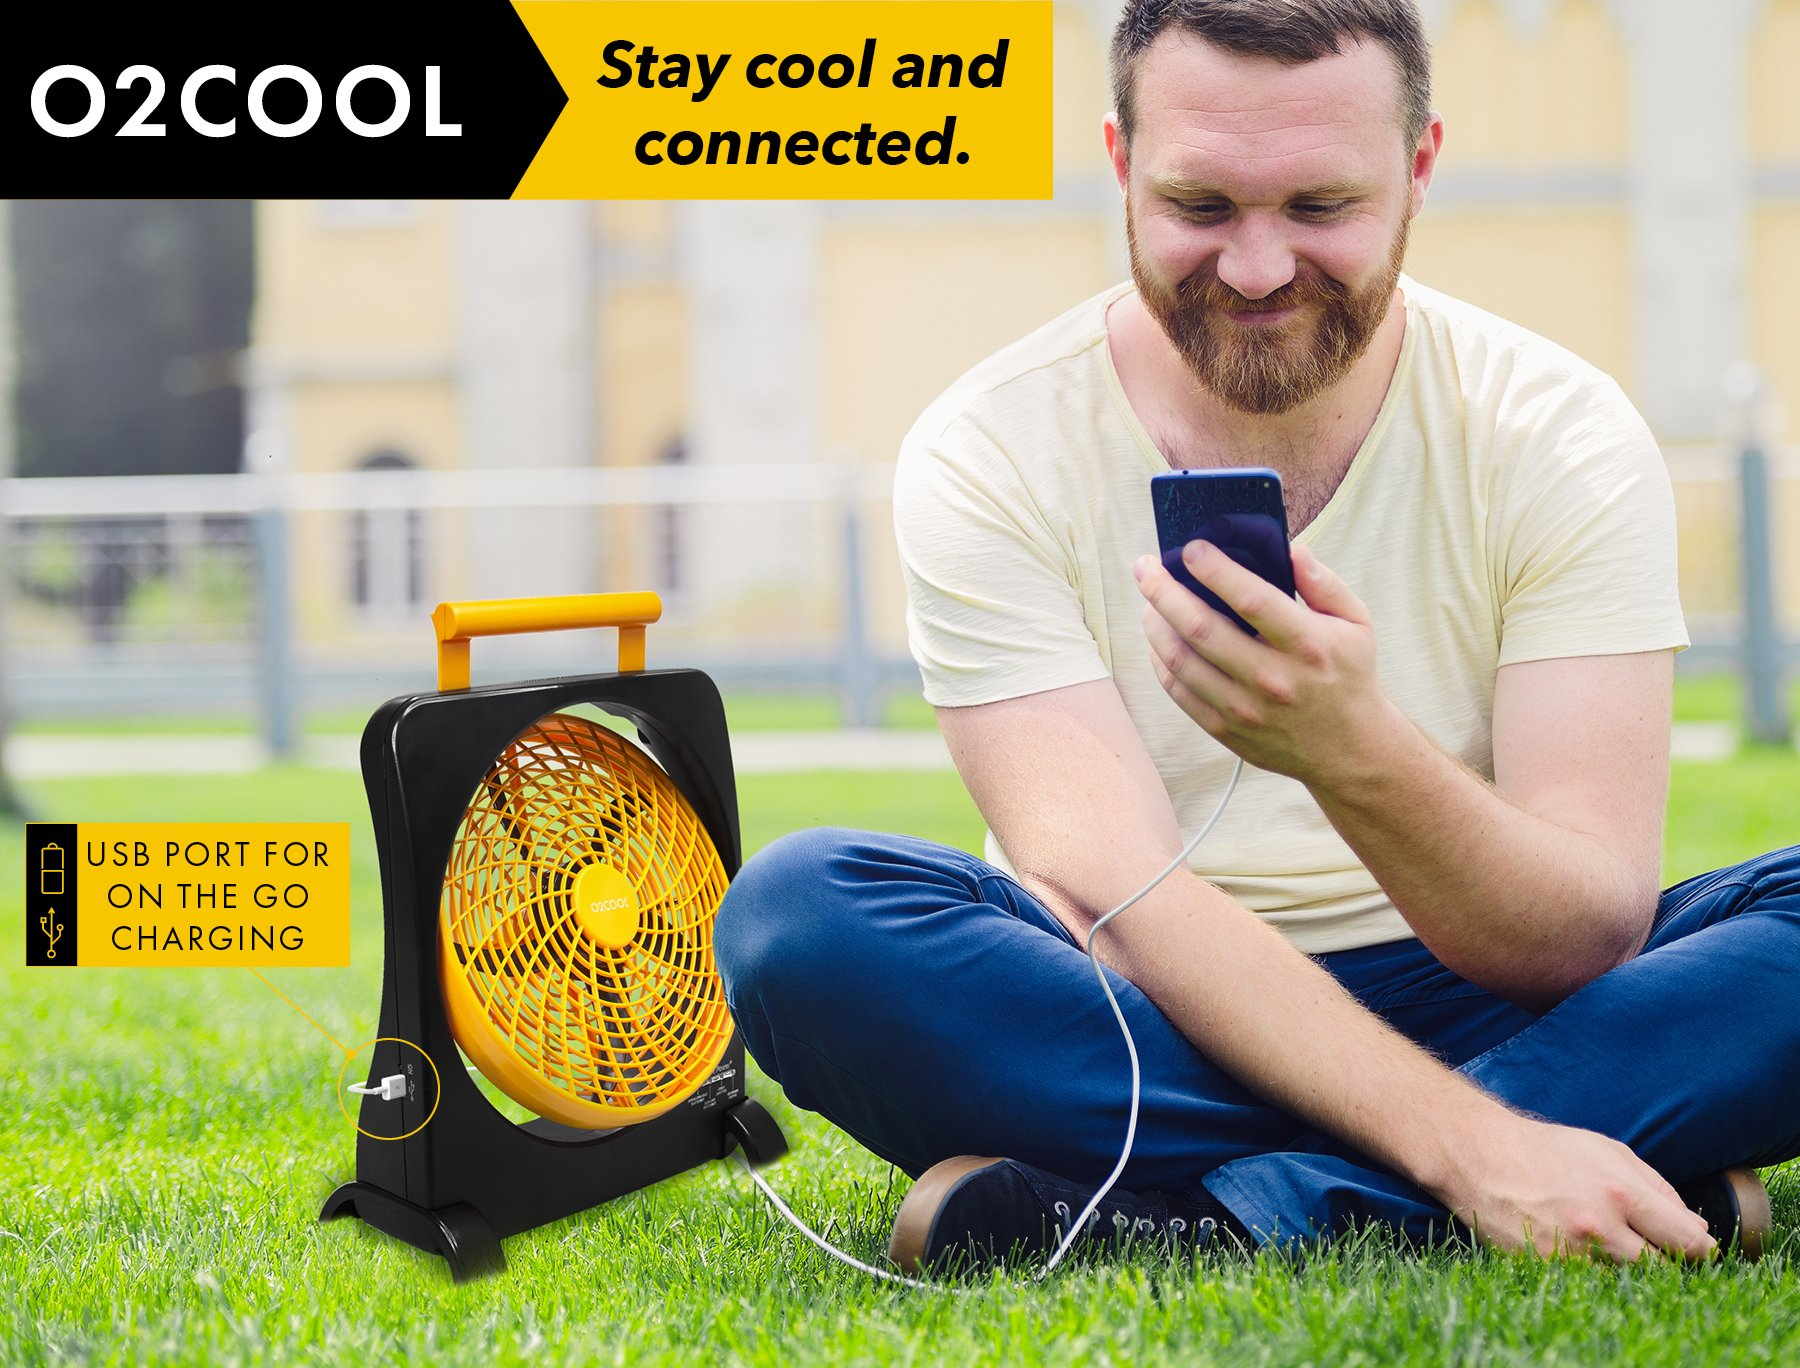 """O2COOL 10"""" Battery Operated Fan - Portable Smart Power Fan with AC Adapter & USB Charging Port for Emergencies, Camping & Travel Use (Orange) by O2COOL (Image #6)"""